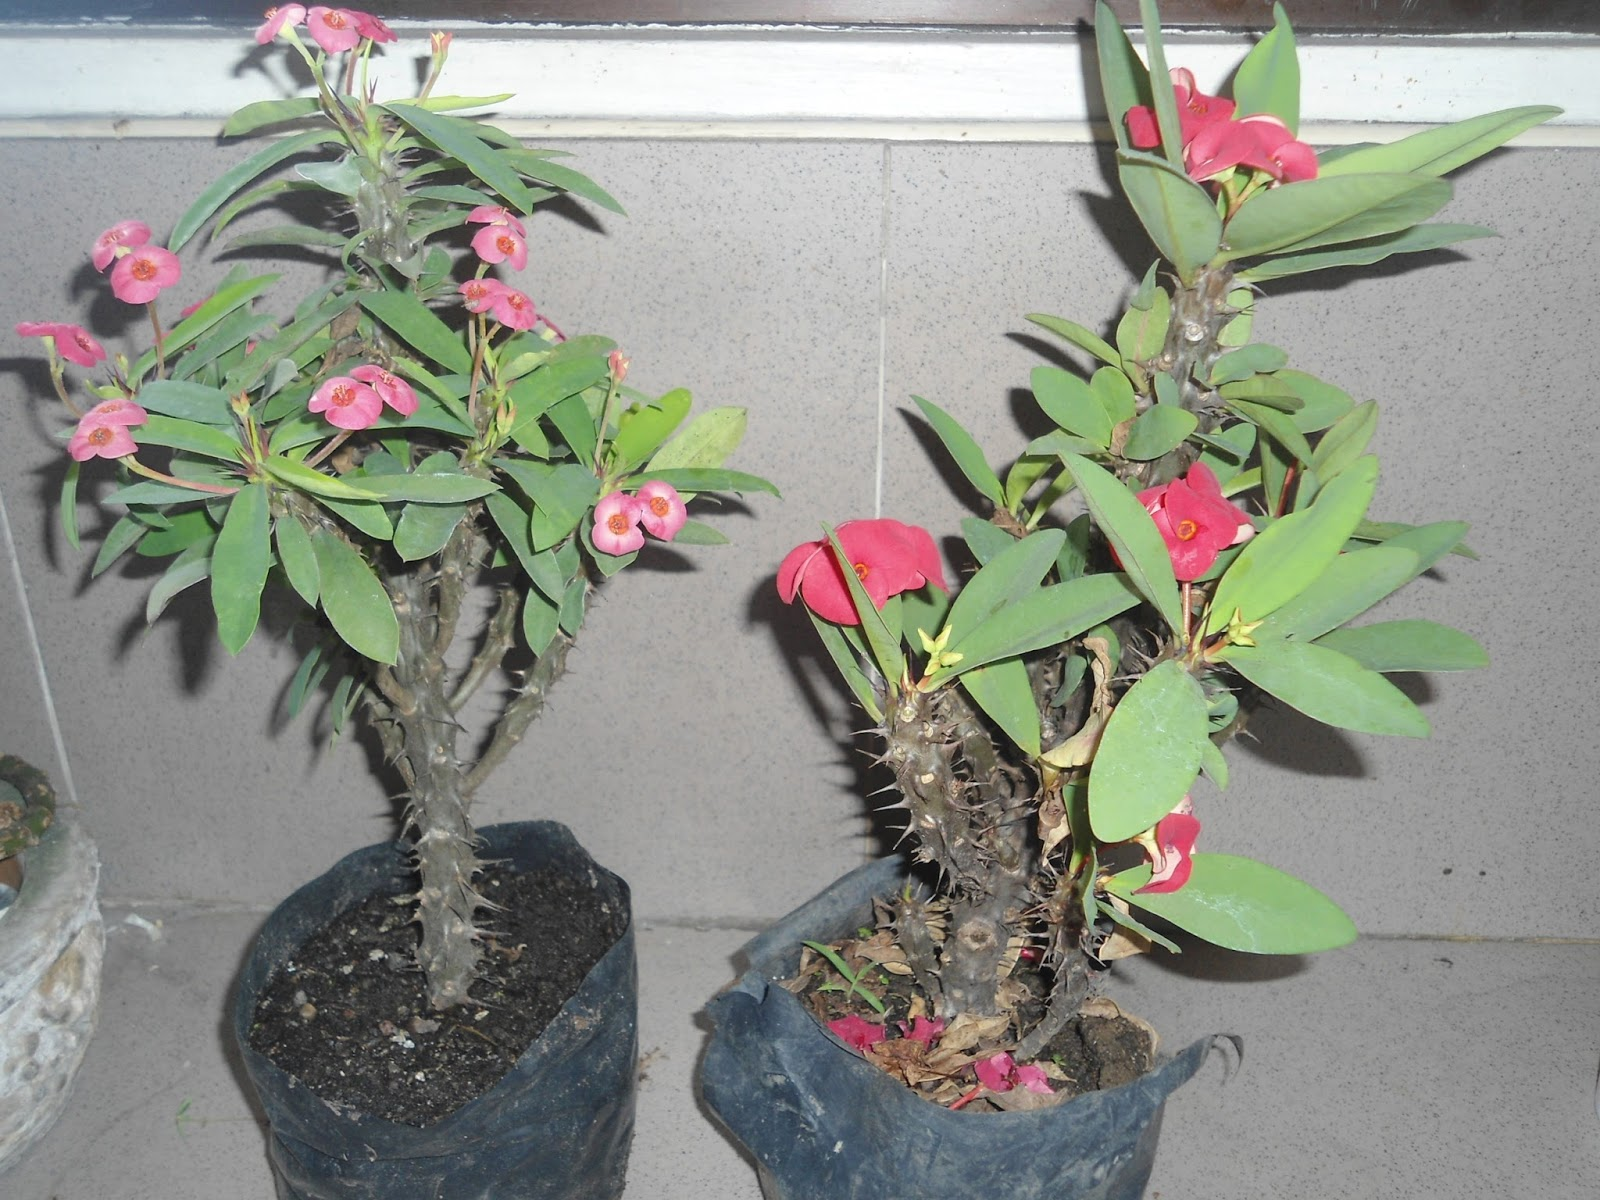 Weng zaballa new plants euphorbia milii for Crown of thorns plant